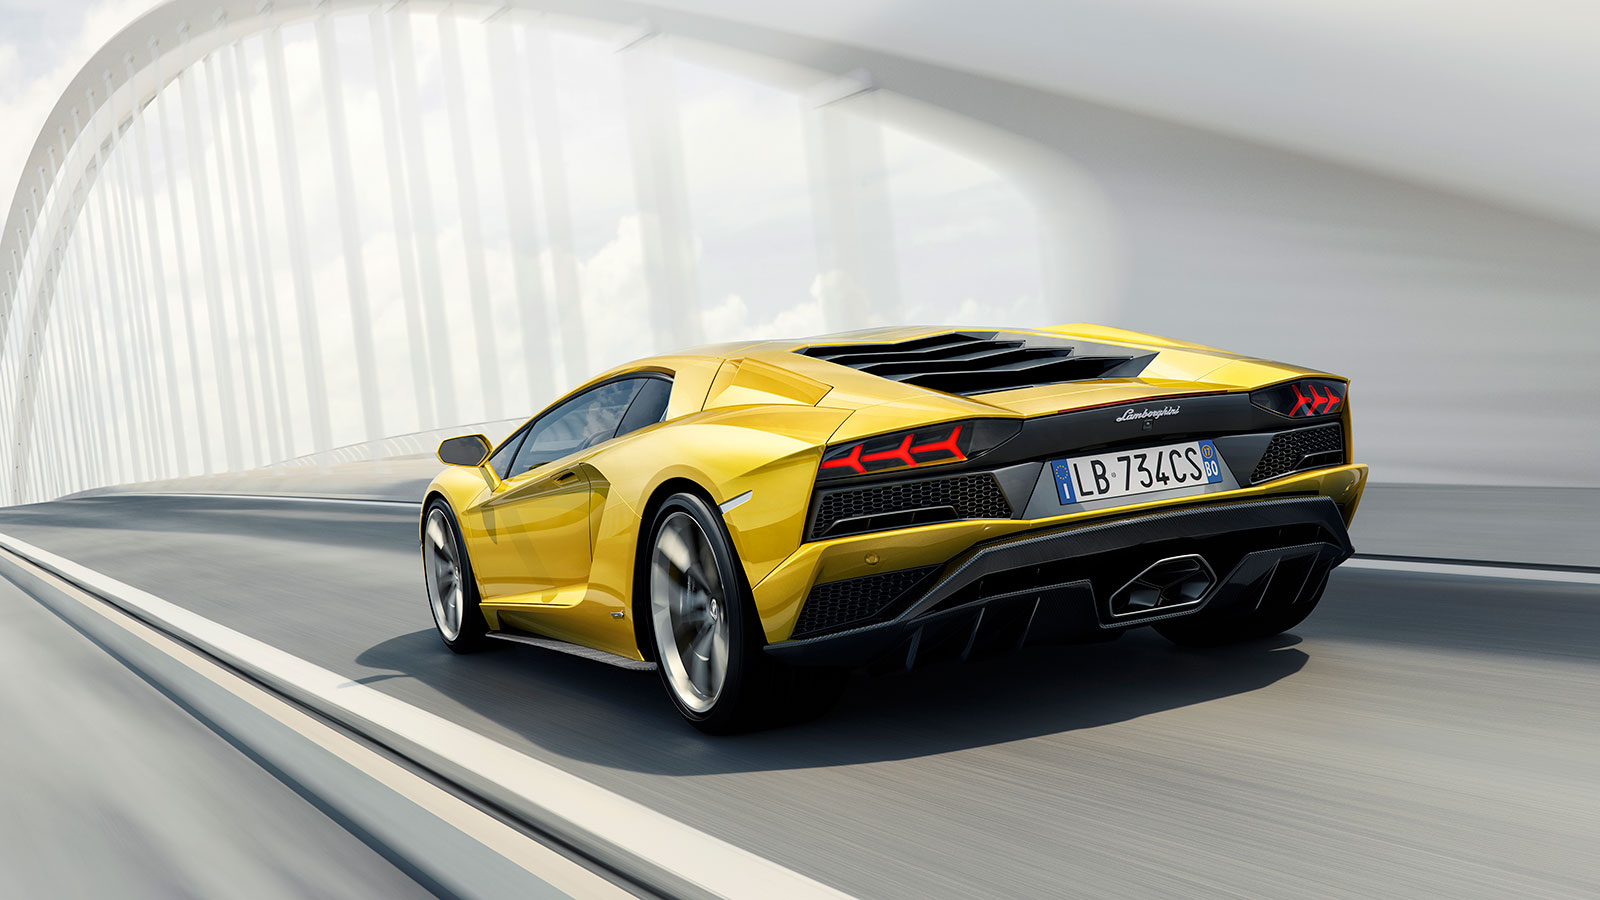 Lamborghini Aventador S Coupe - The Icon Reborn image 34